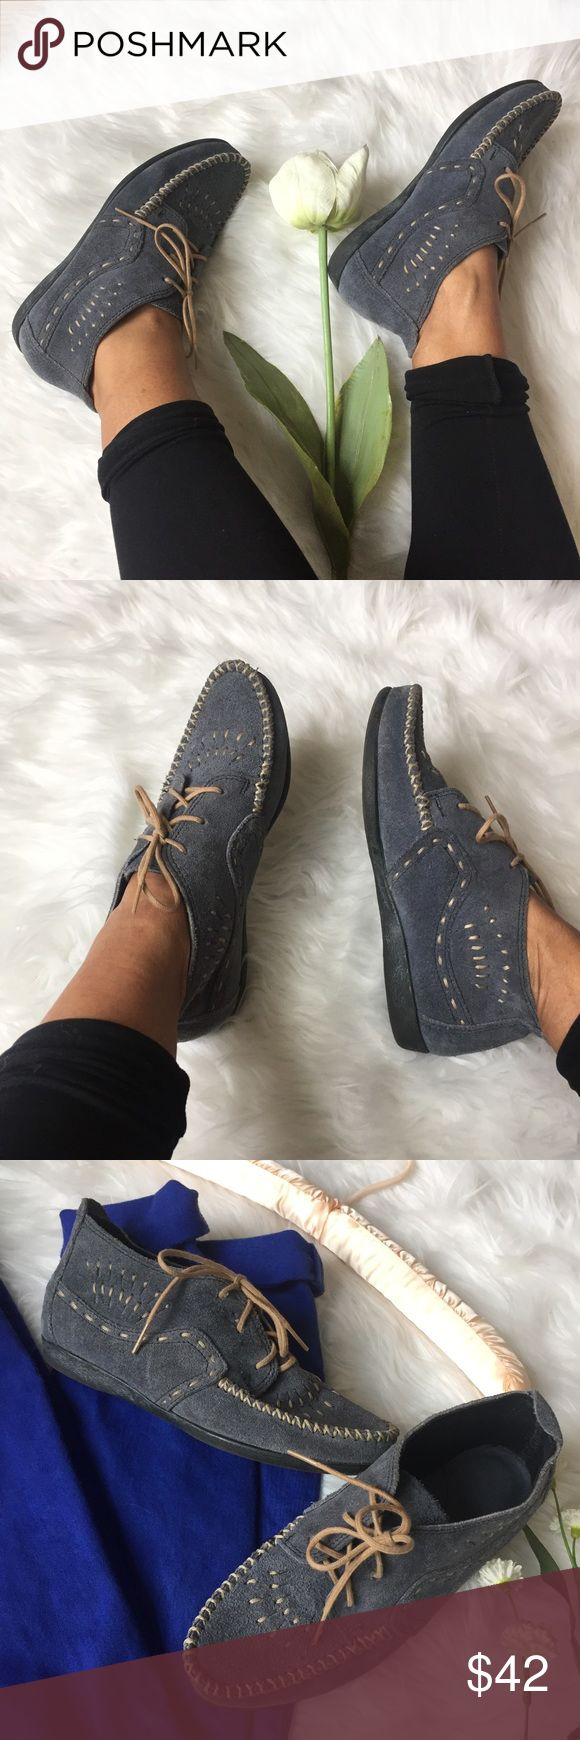 Minnetonka • Chukka Ankle Boots A perfect pair of low ankle boots by Minnetonka. Moccasin feel. Sturdy rubber sole and blue suede leather. Beautiful intricate stitched design. Size 5.5 Minnetonka Shoes Ankle Boots & Booties